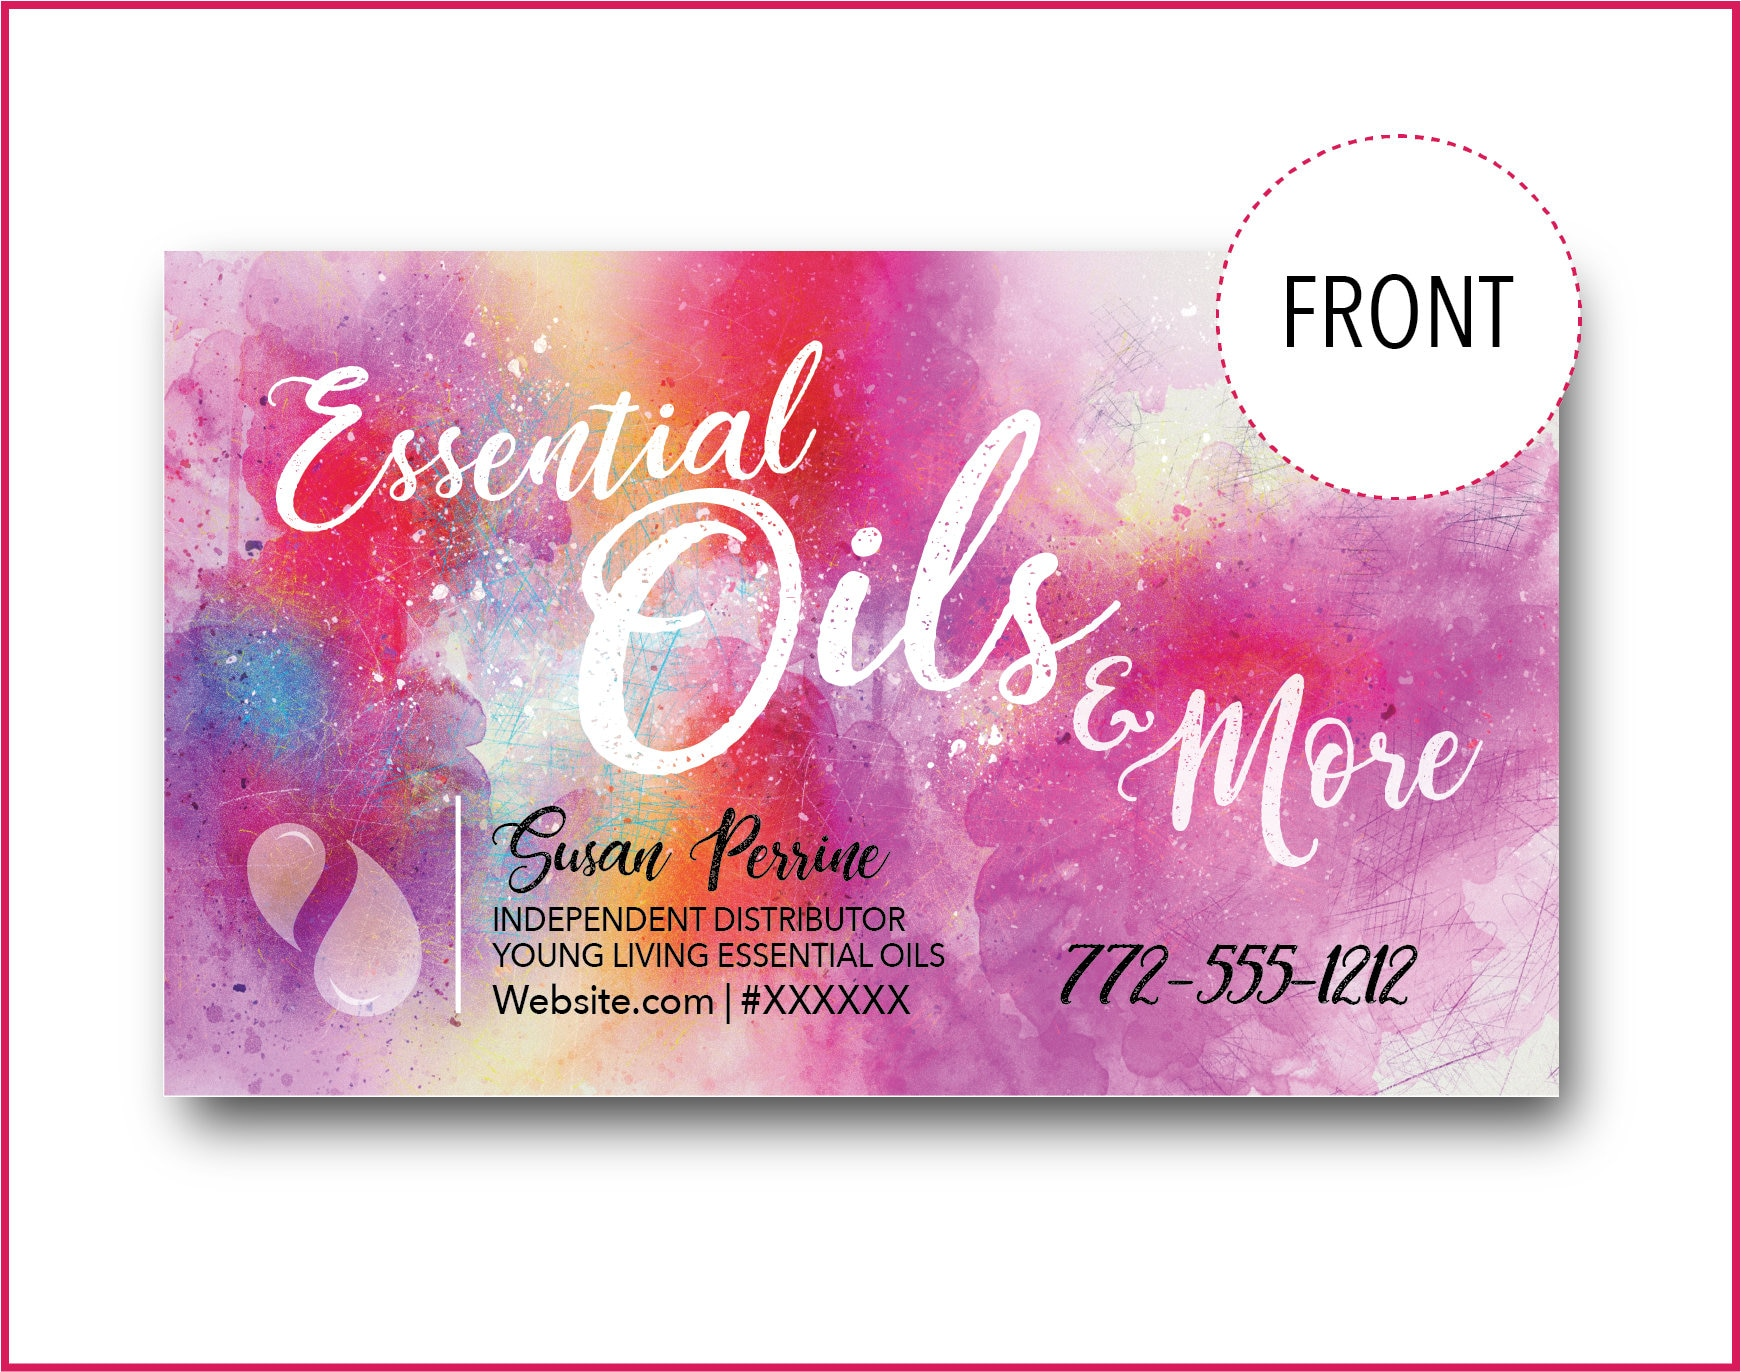 Business Cards For Essential Oils Downloadable And Printable